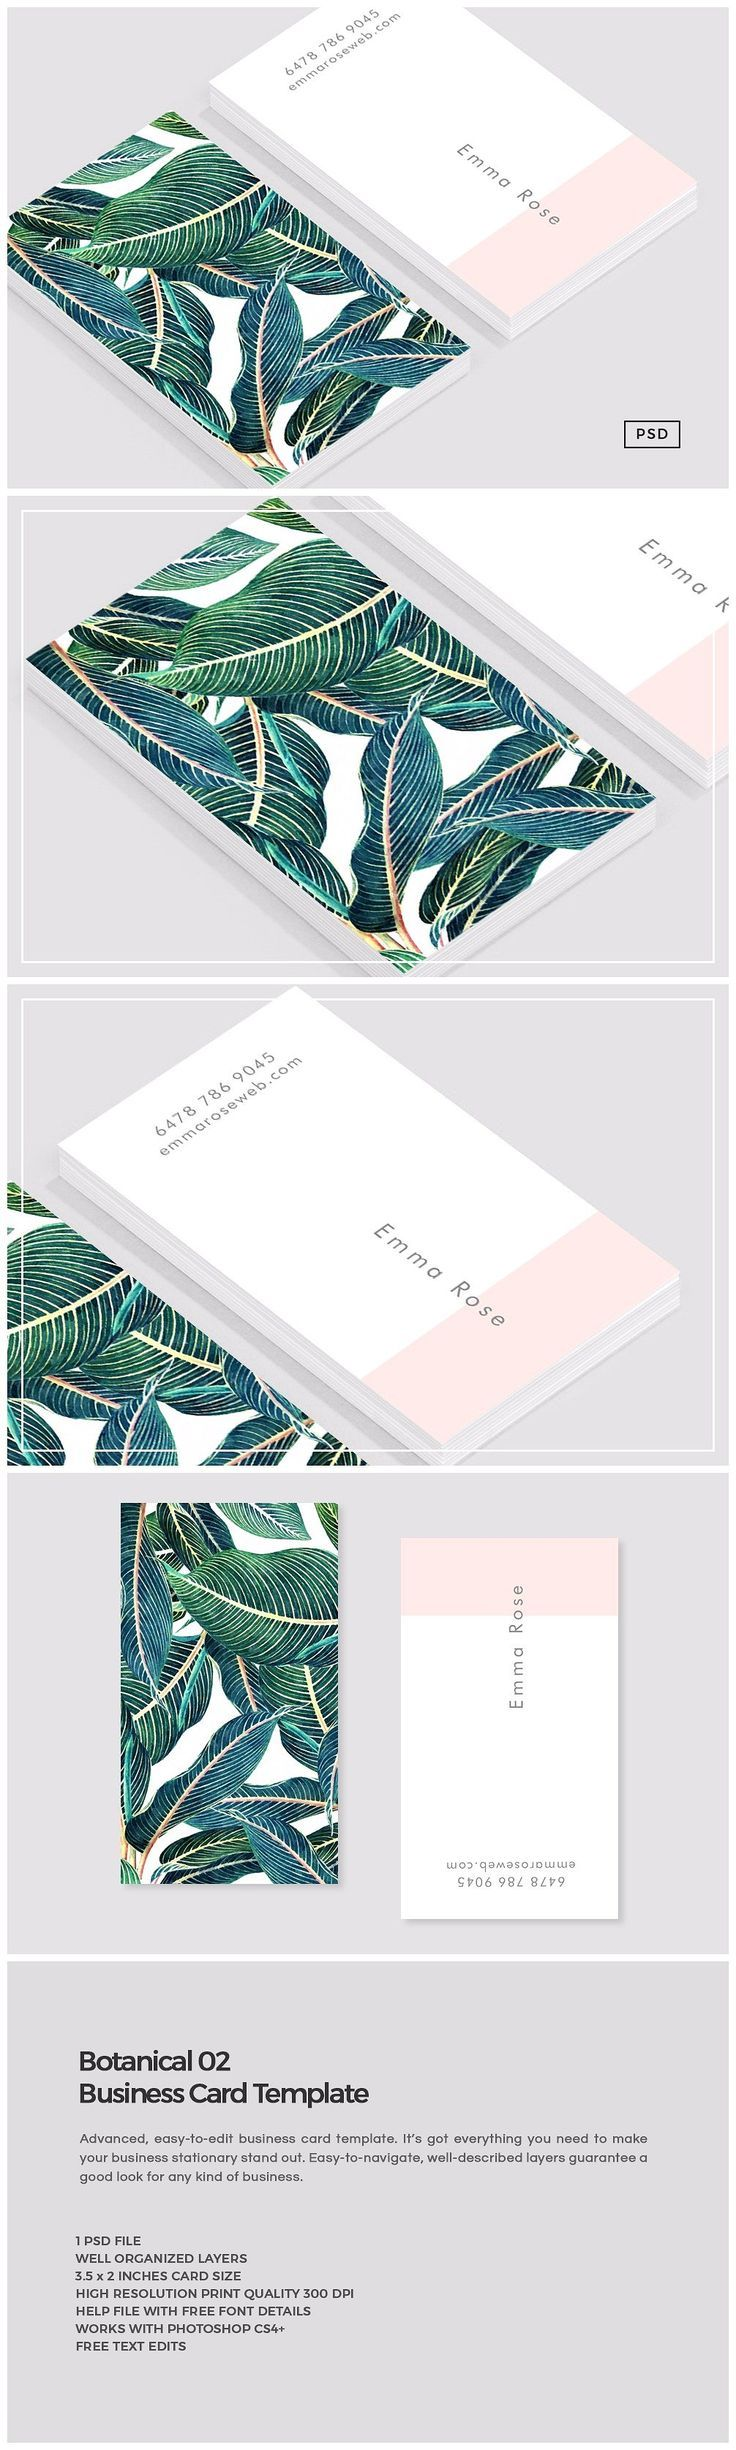 Botanical 02 business card template cartes de visita carto e visita botanical 02 business card template by the design label on creativemarket reheart Images